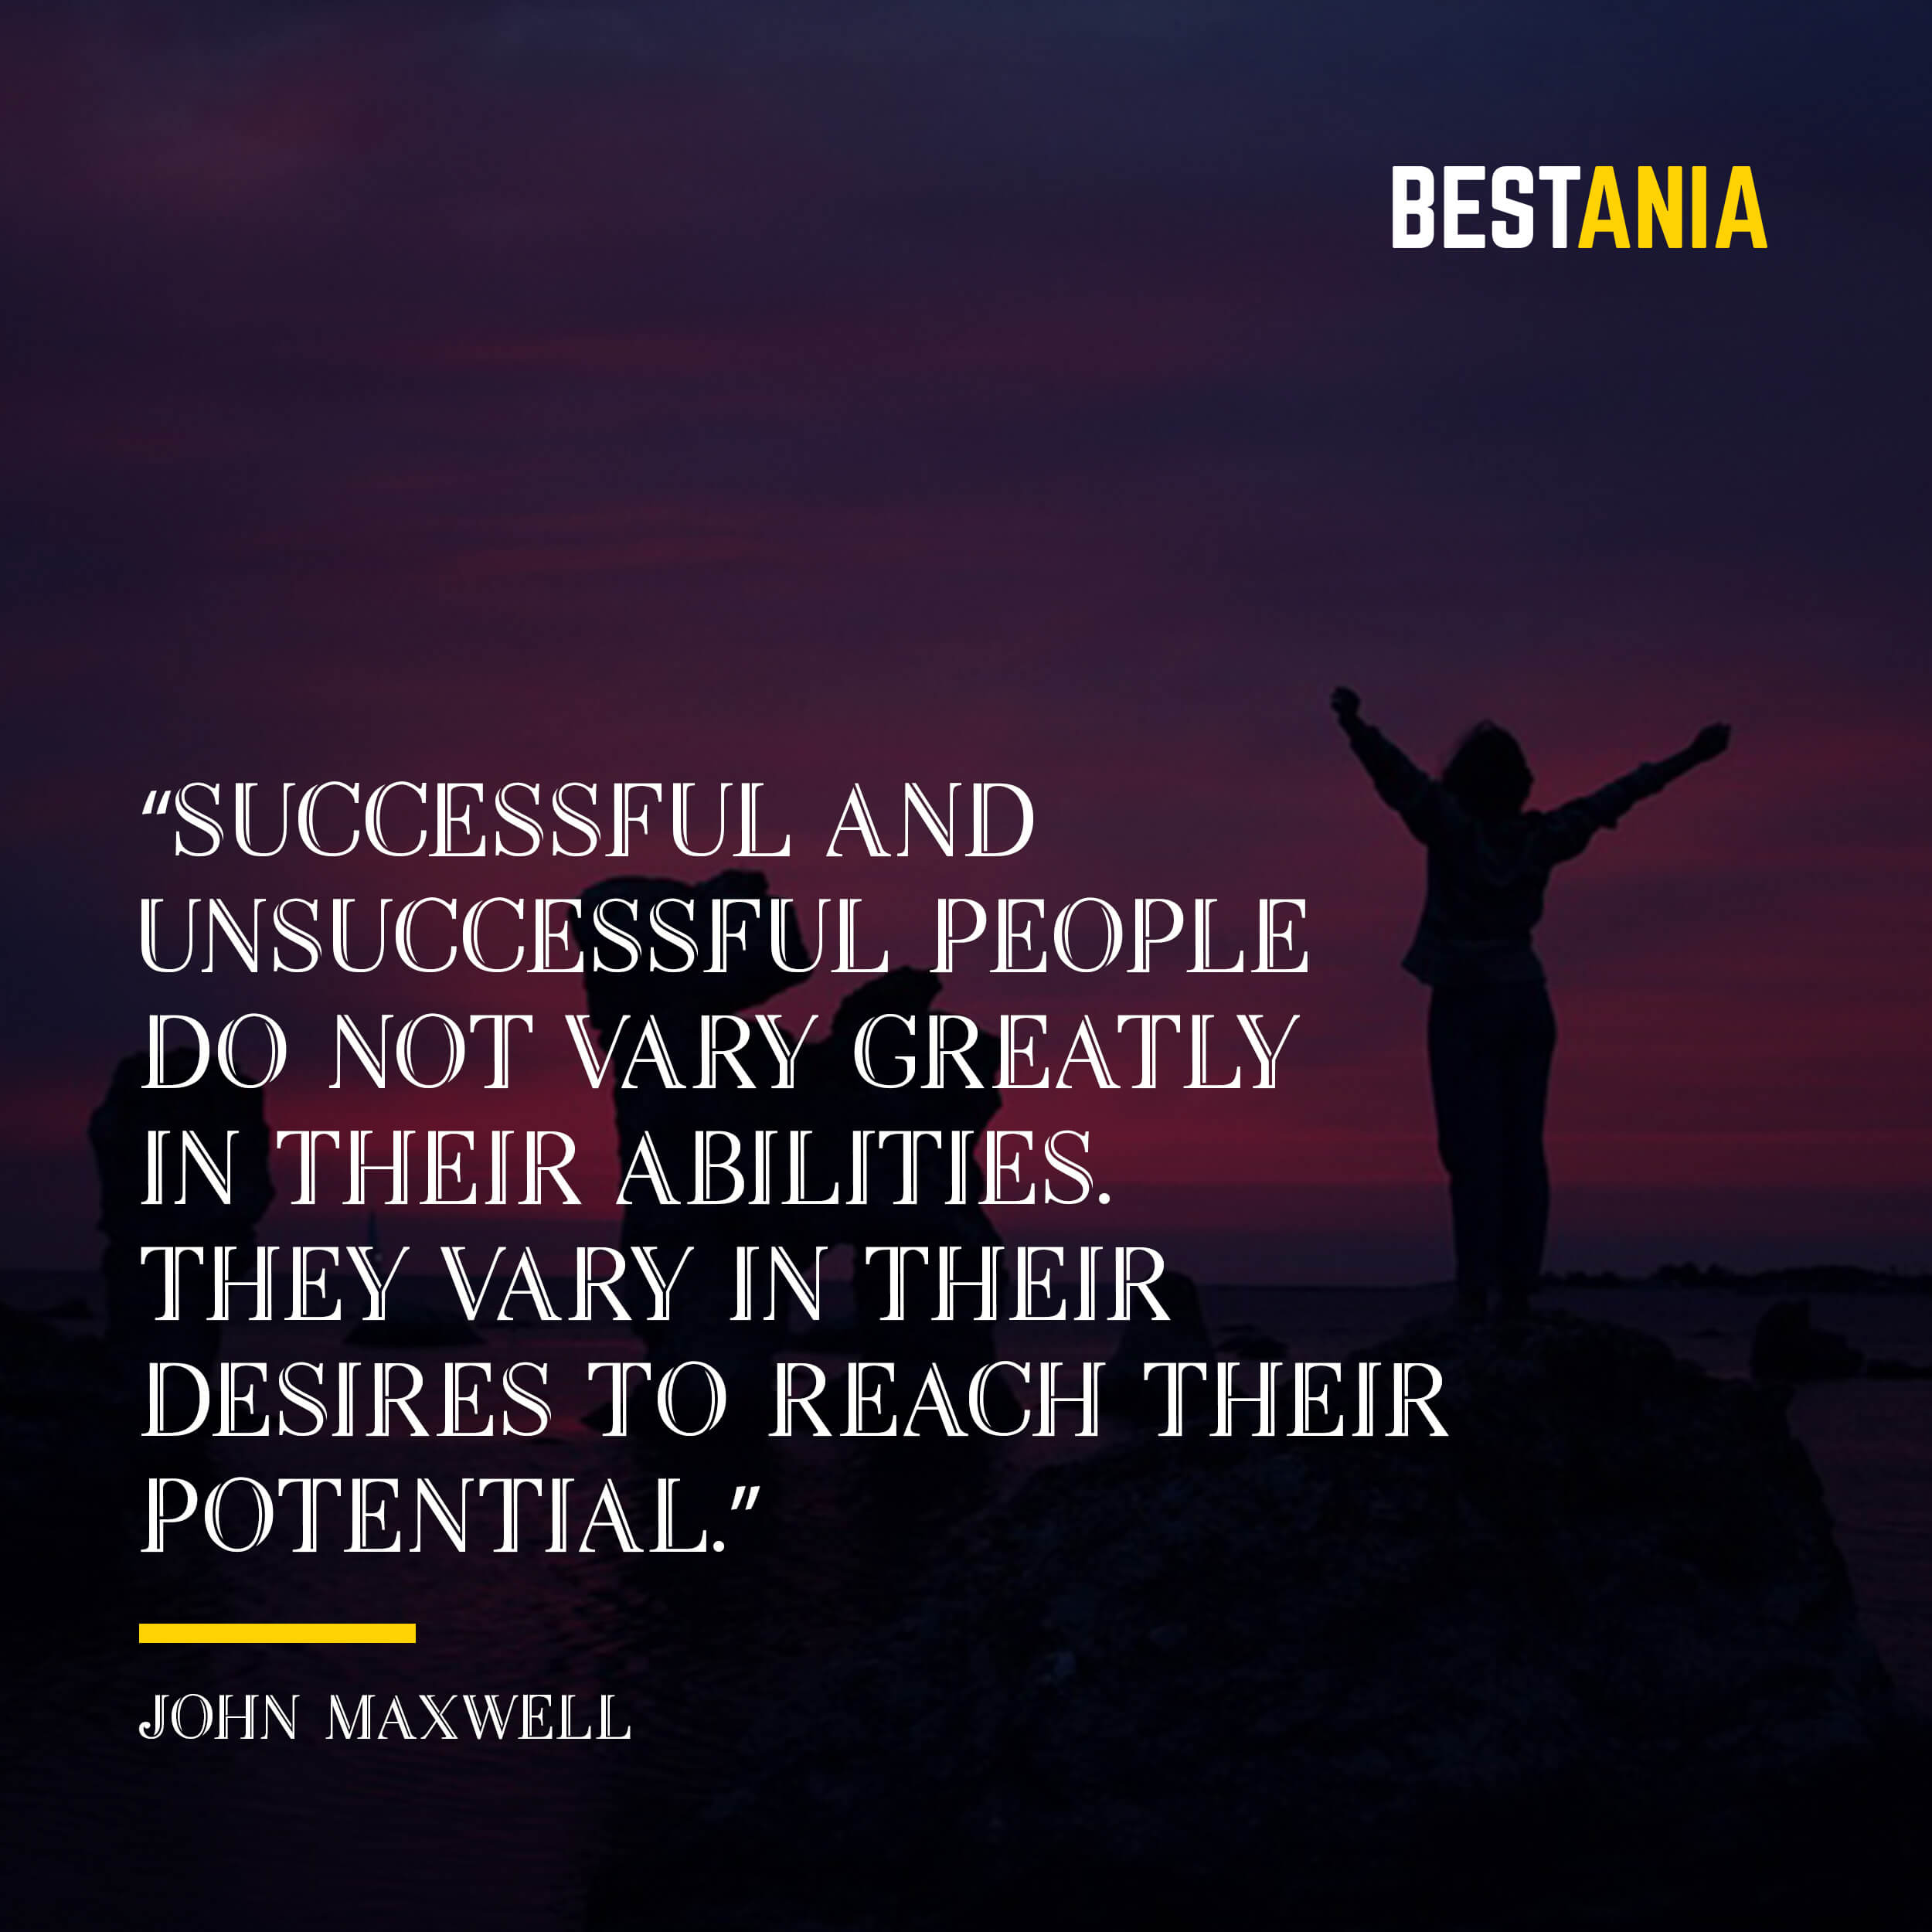 """Successful and unsuccessful people do not vary greatly in their abilities. They vary in their desires to reach their potential."" – John Maxwell"